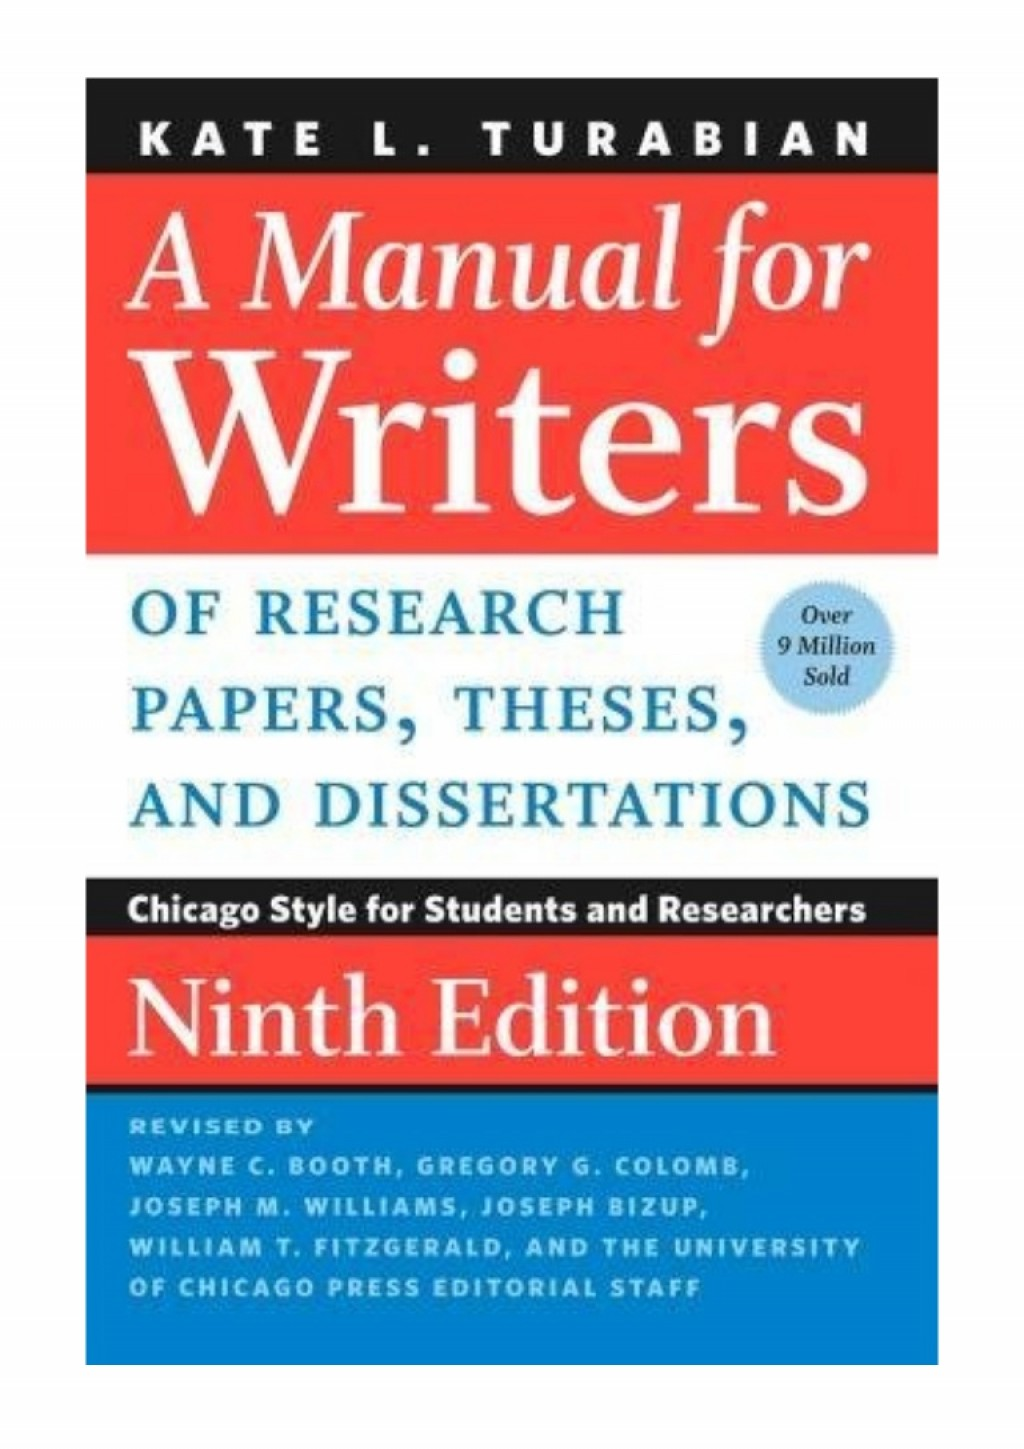 006 Manual For Writers Of Research Papers Theses And Dissertations Turabian Pdf Paper 022643057x Amanualforwritersofresearchpapersthesesanddissertationsnintheditionbykatel Wonderful A Large